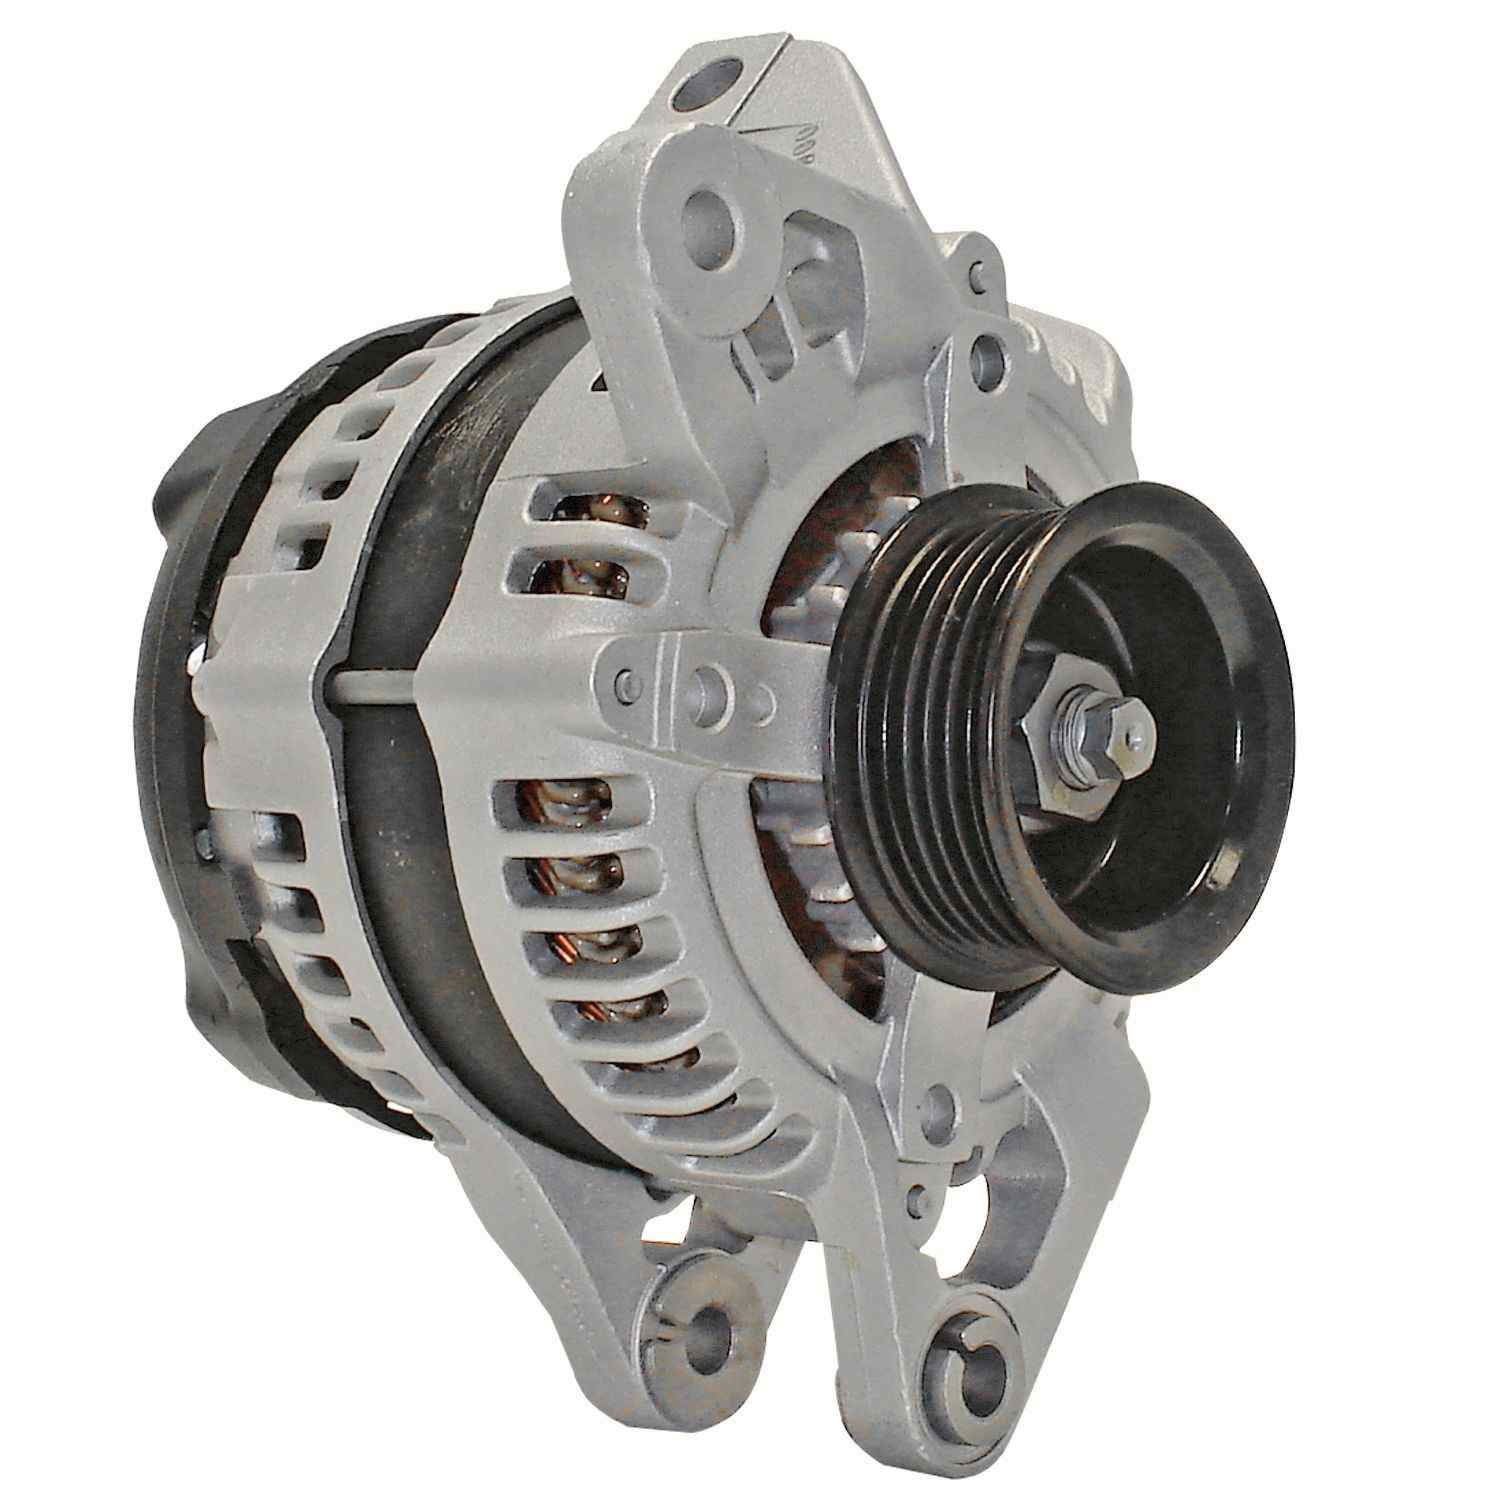 ACDELCO GOLD/PROFESSIONAL - Reman Alternator - DCC 334-1449A